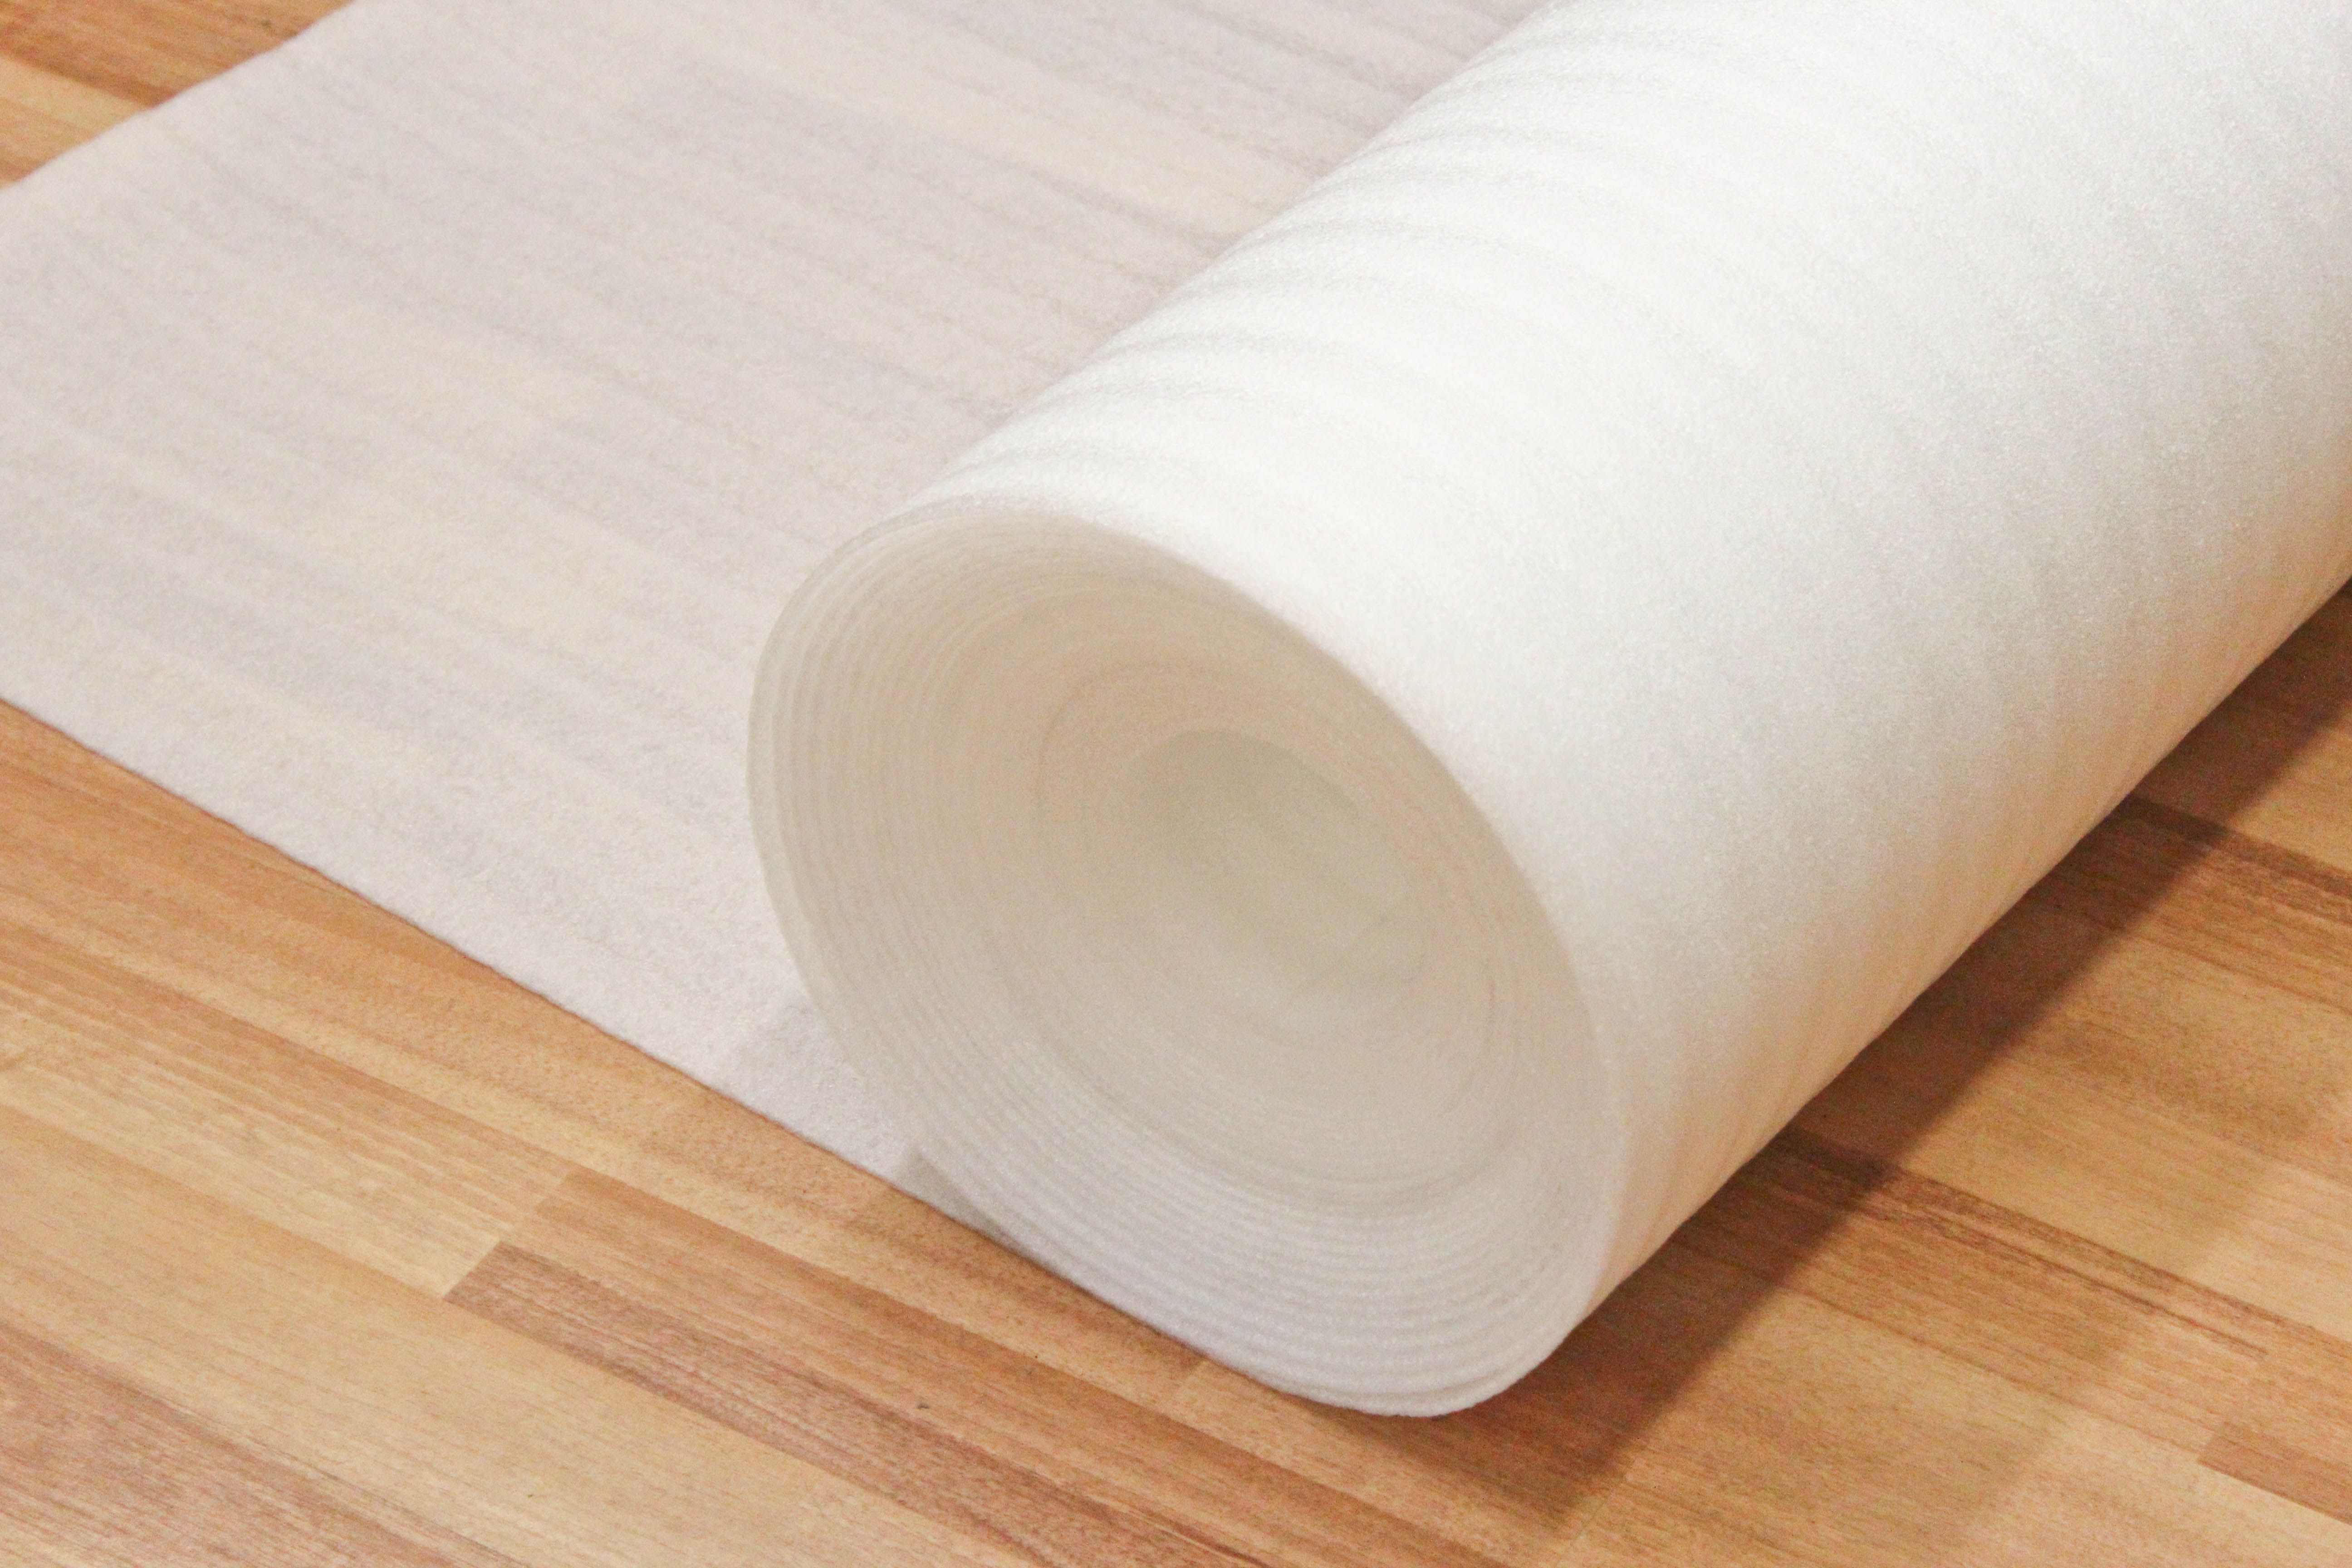 3 Things You Need To Consider When Choosing Laminate Underlay For Your Floor Underlay For Laminate Flooring Installing Laminate Flooring Flooring Underlayment